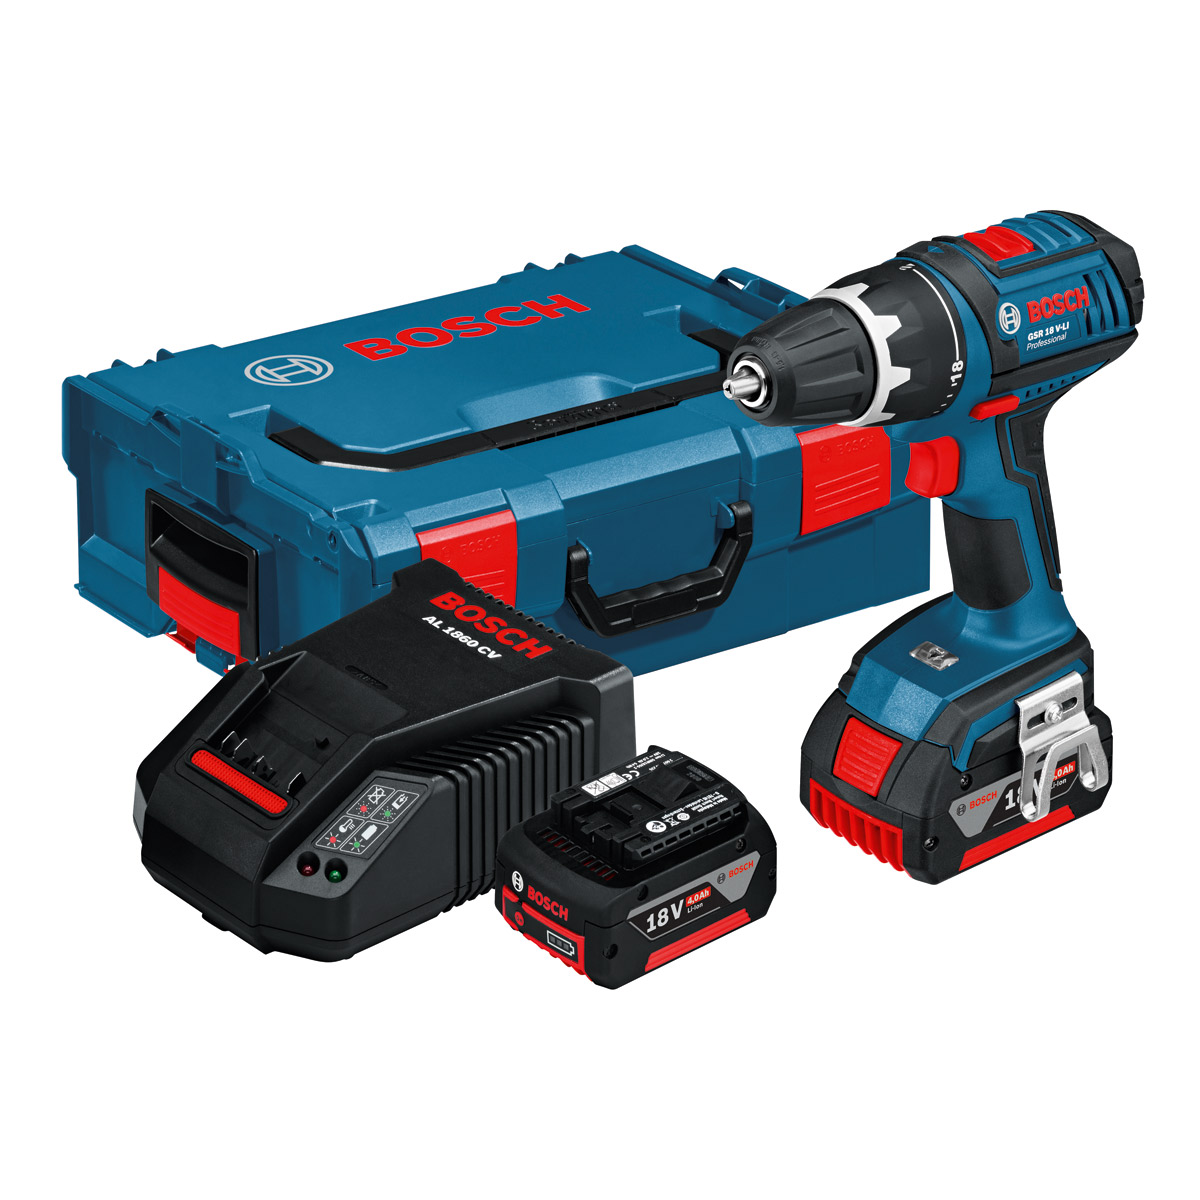 bosch gsr18v li 18v li ion cordless dynamicseries drill driver 2 x 4ah batteries l boxx. Black Bedroom Furniture Sets. Home Design Ideas